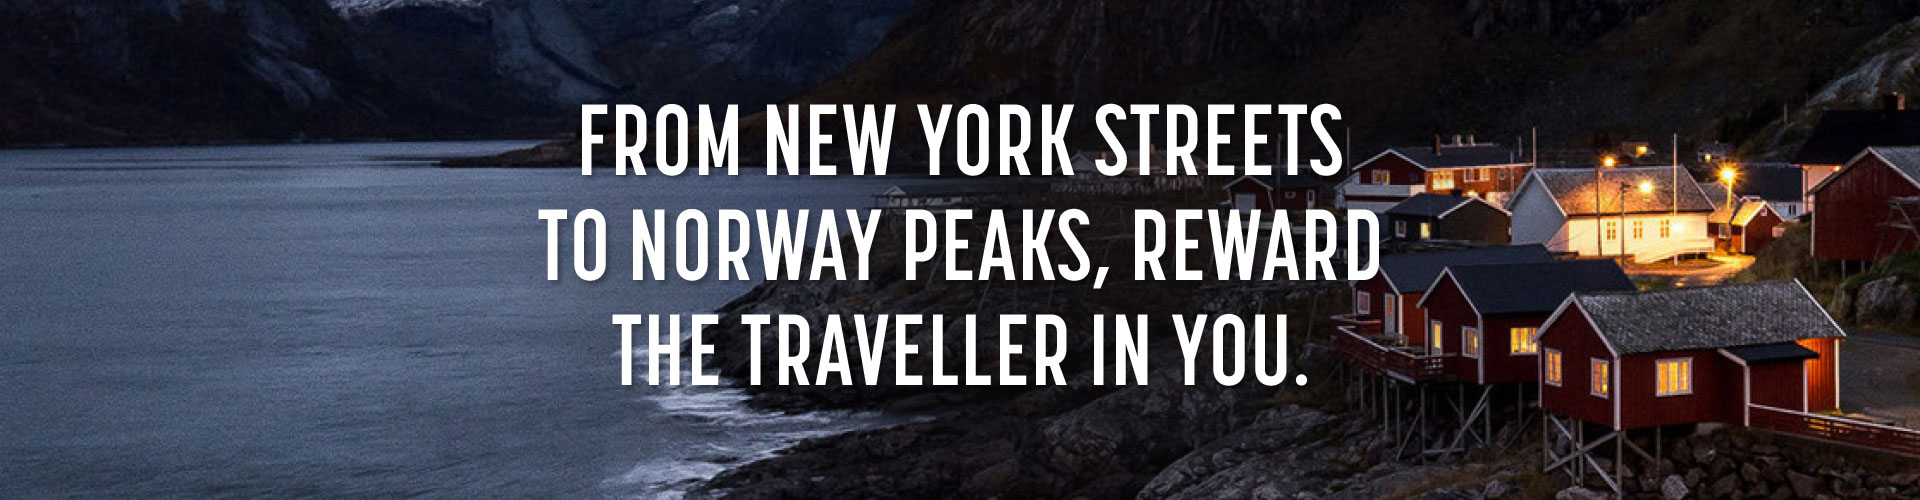 From New York streets to Norway peaks, reward the traveller in you.